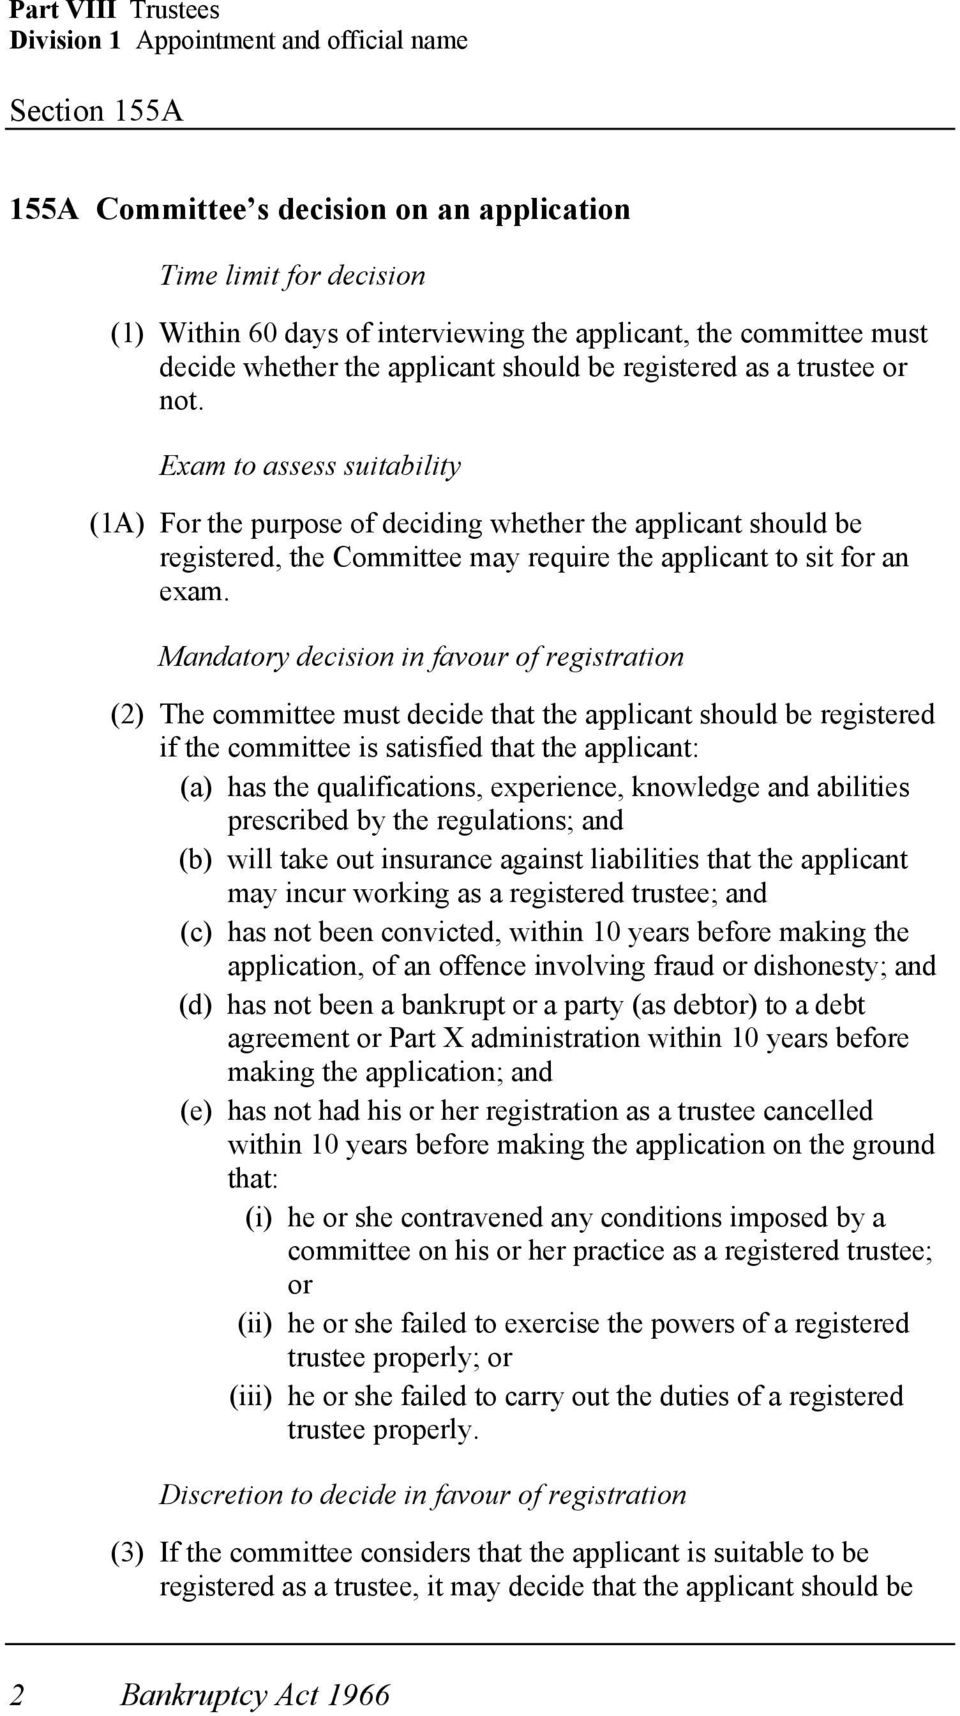 Exam to assess suitability (1A) For the purpose of deciding whether the applicant should be registered, the Committee may require the applicant to sit for an exam.